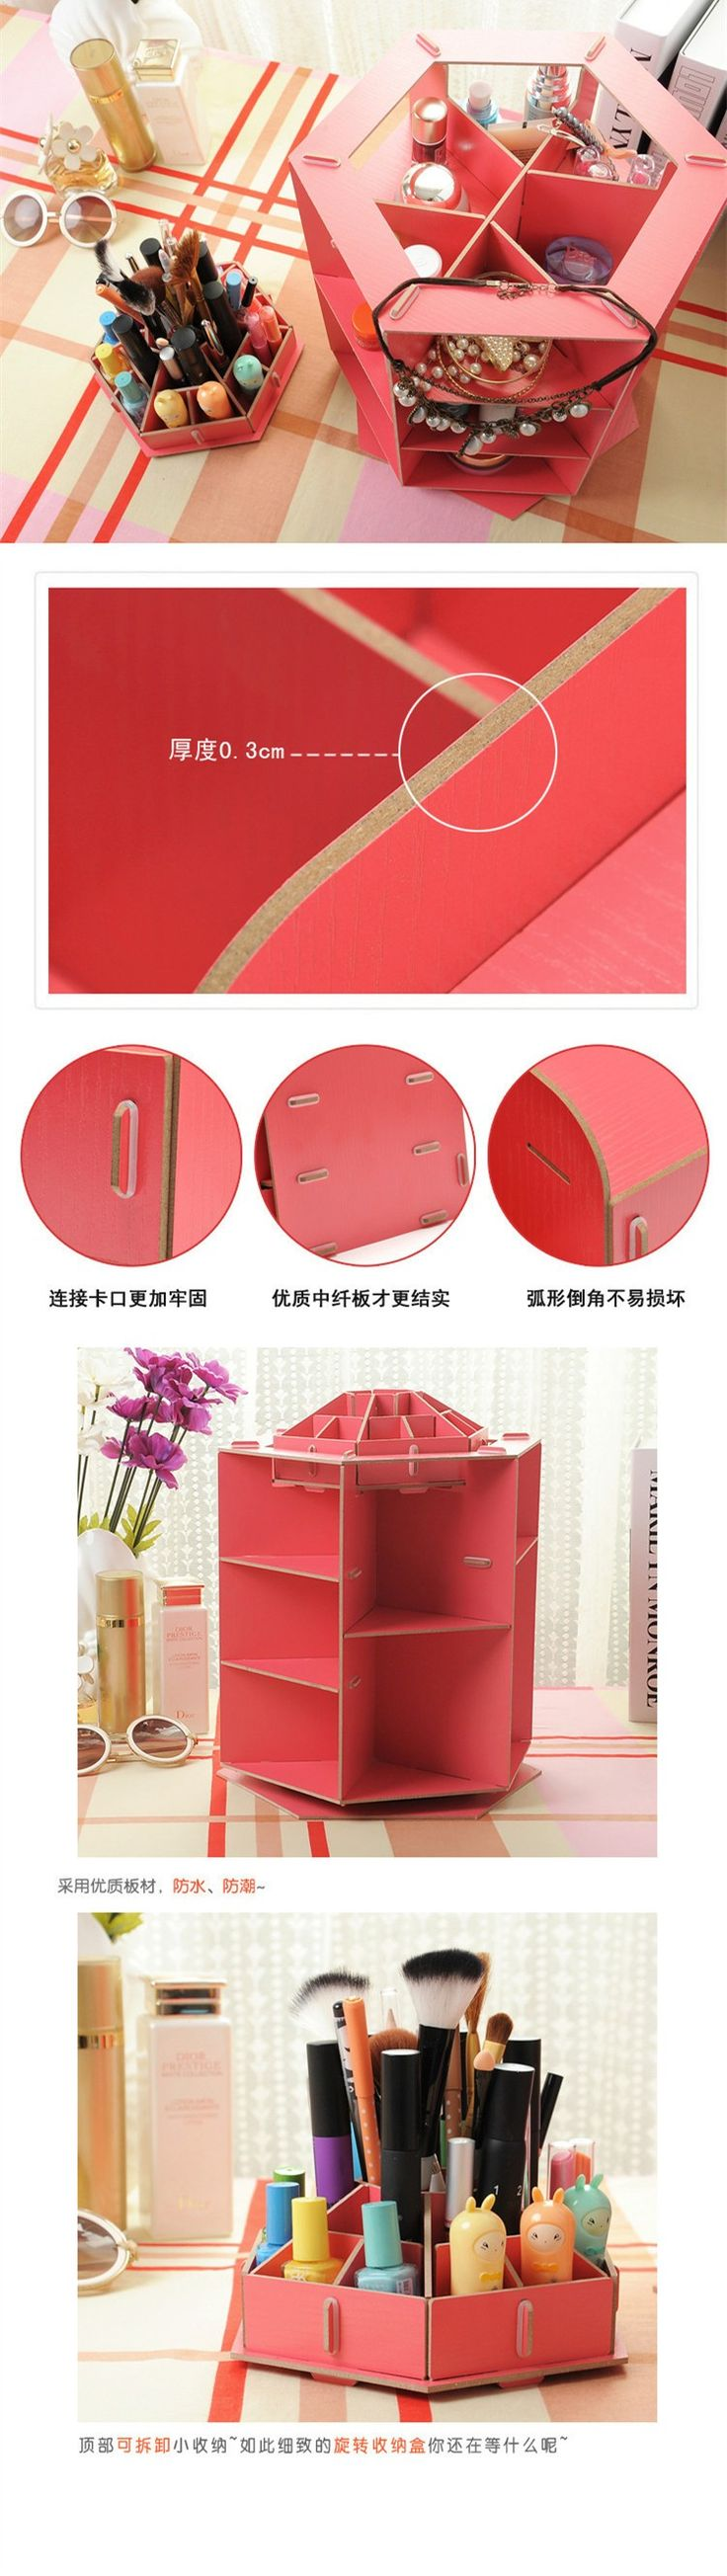 Hot Sale Cute Wooden Office 360 rotate Desktop Storage Boxes Makeup Organizer Storage Box-in Storage Boxes & Bins from Home & Garden on Aliexpress.com | Alibaba Group